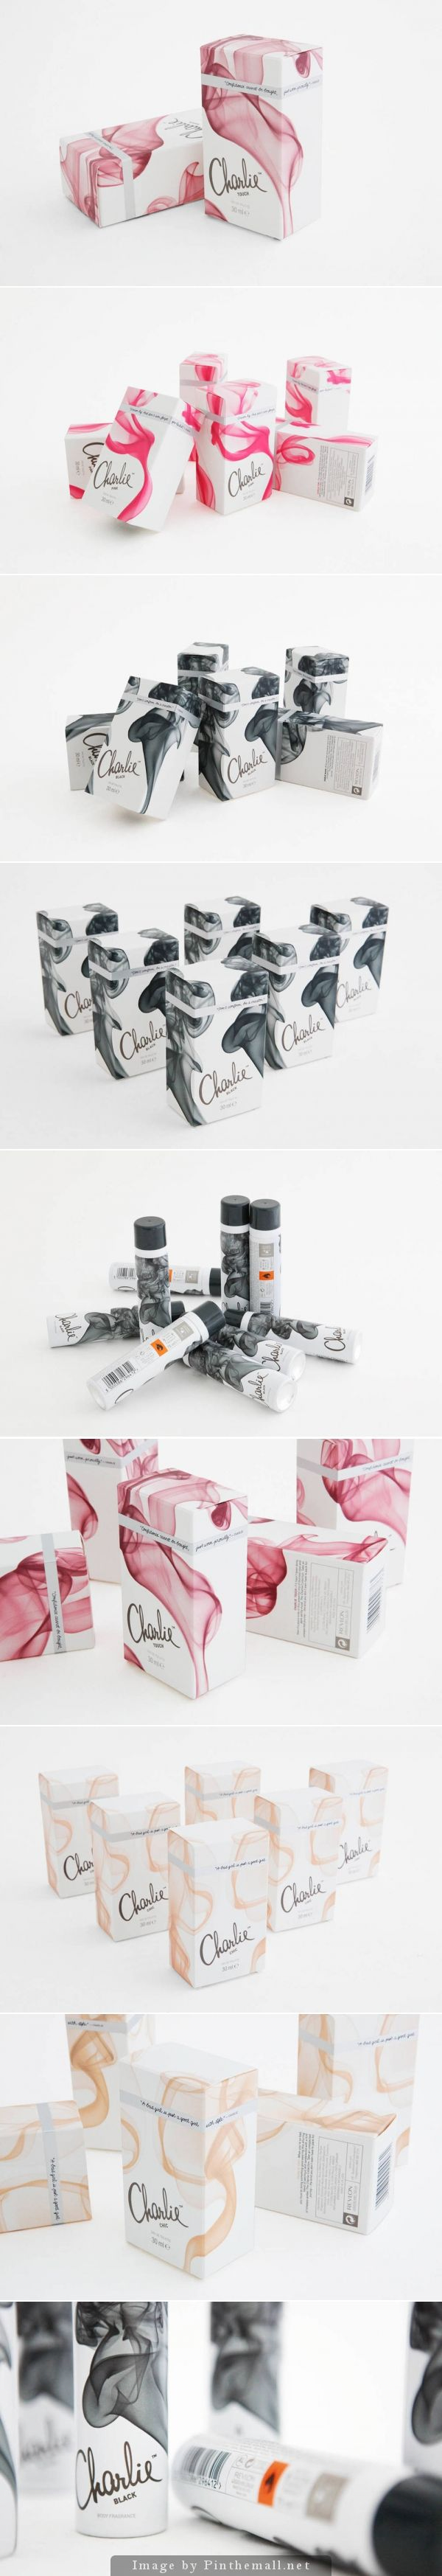 Charlie #packaging in different color renditions PD